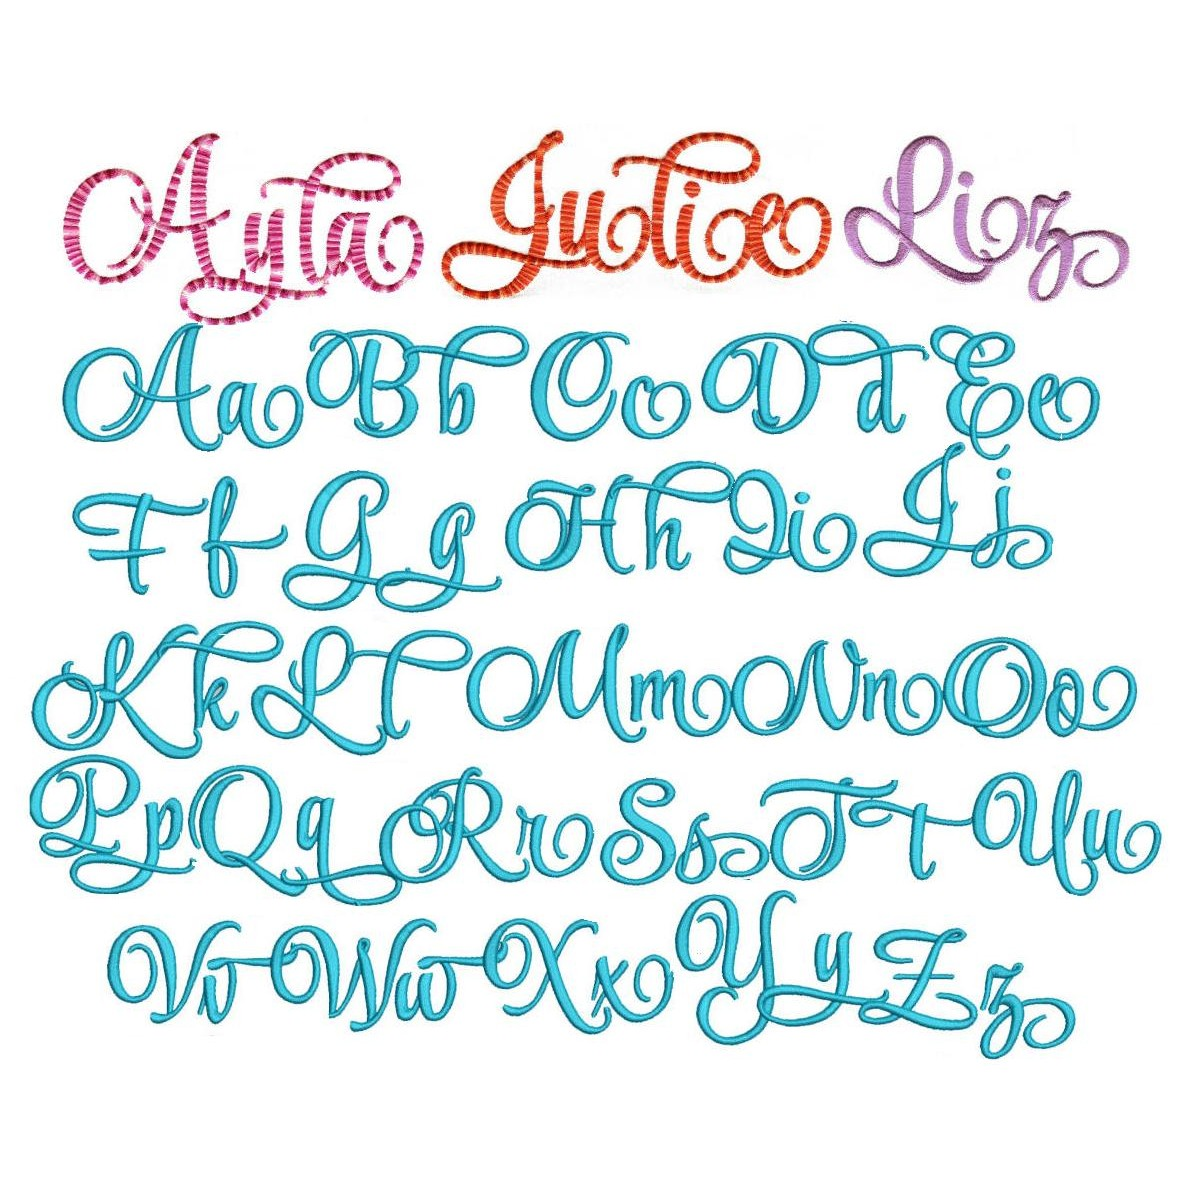 Awesome machine embroidery fonts and alphabets